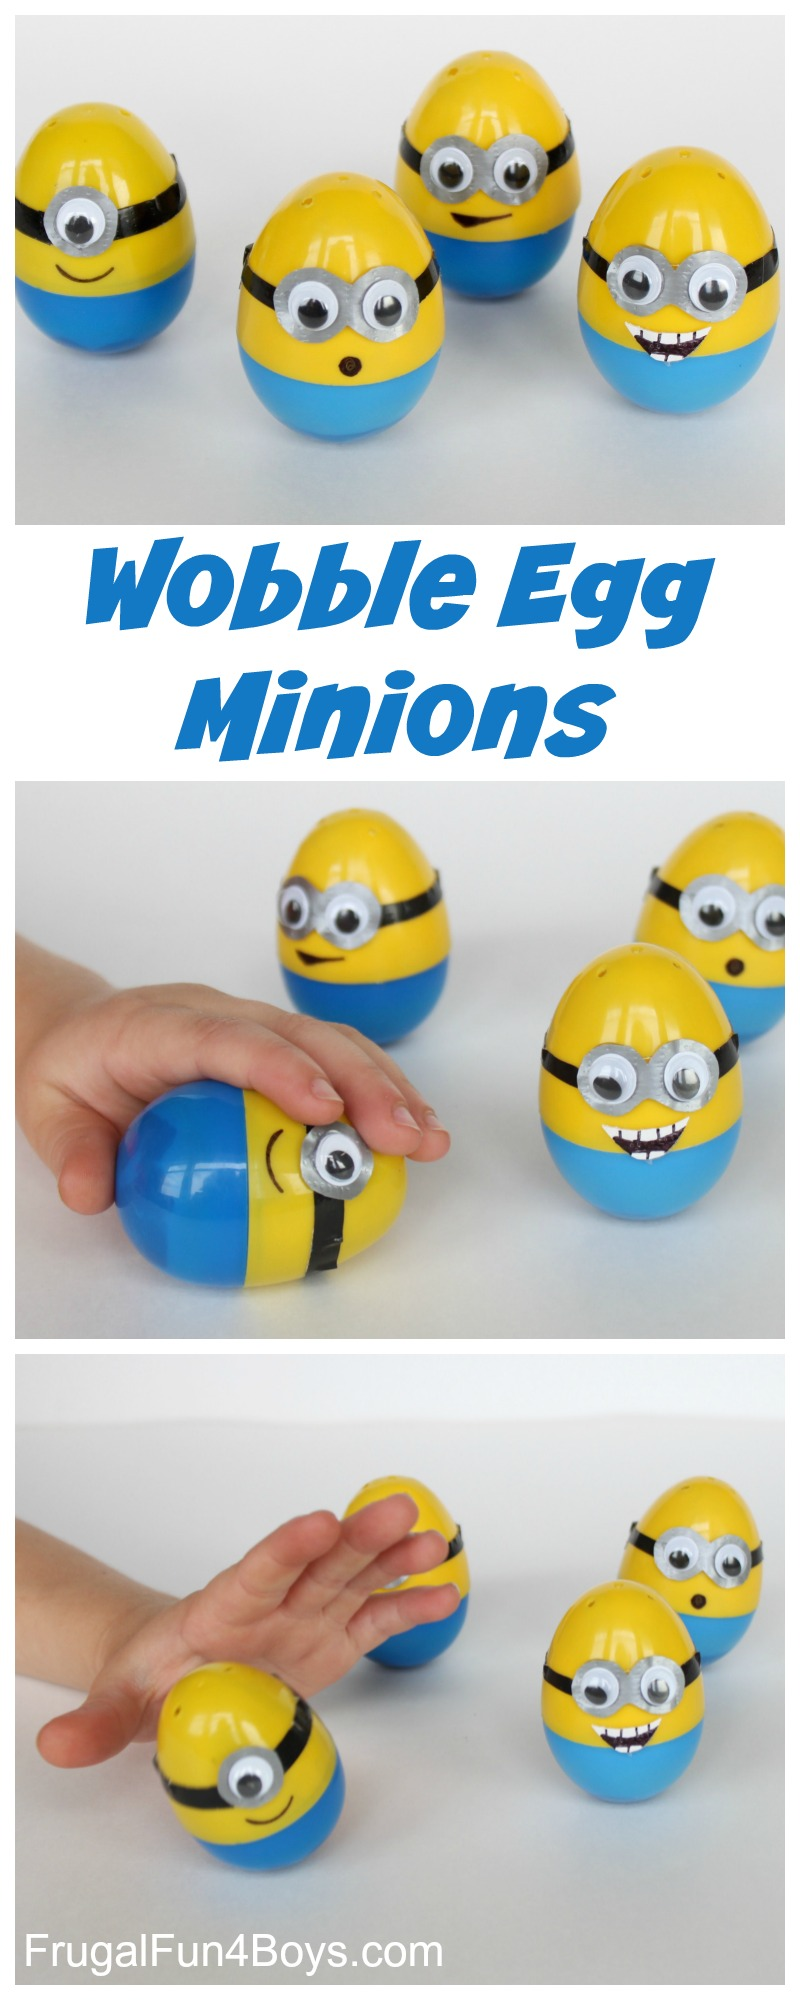 How To Make Minion Eggs Frugal Fun For Boys And Girls